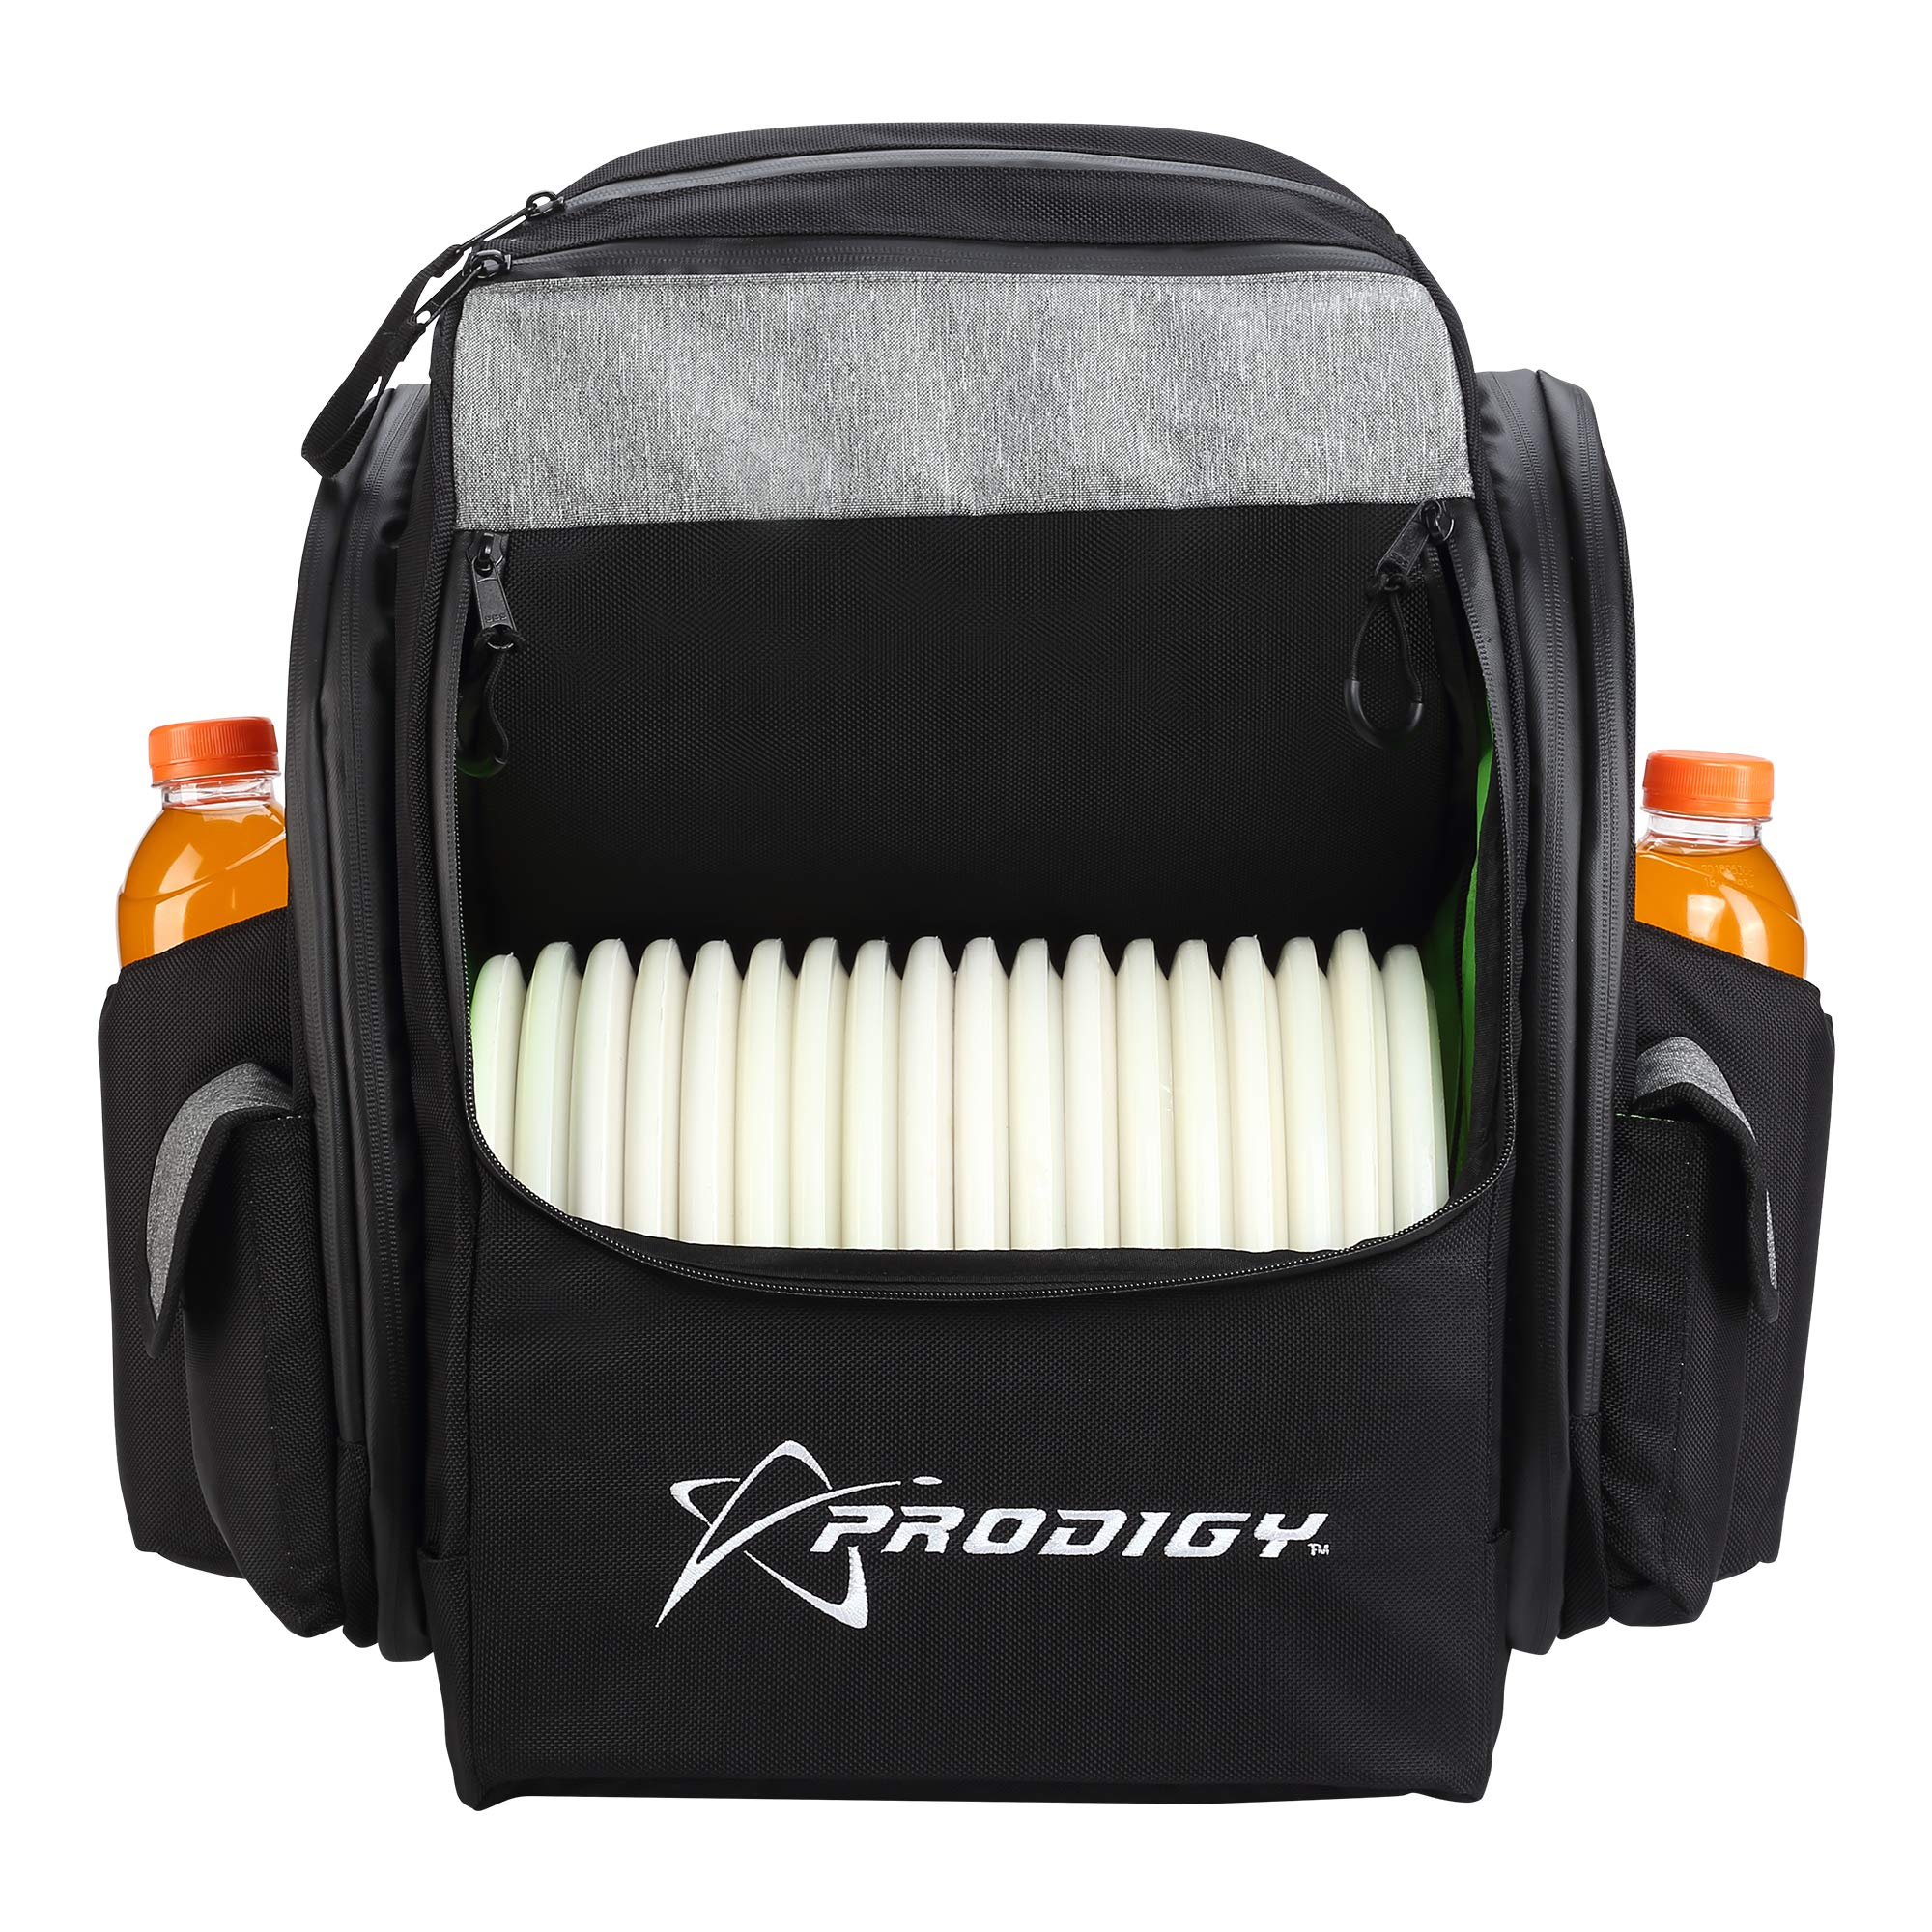 Prodigy Disc BP-1 V2 Disc Golf Backpack Bag - Fits 30+ Discs - Pro Quality (Black/Heather Gray, Rainfly) by Prodigy Disc